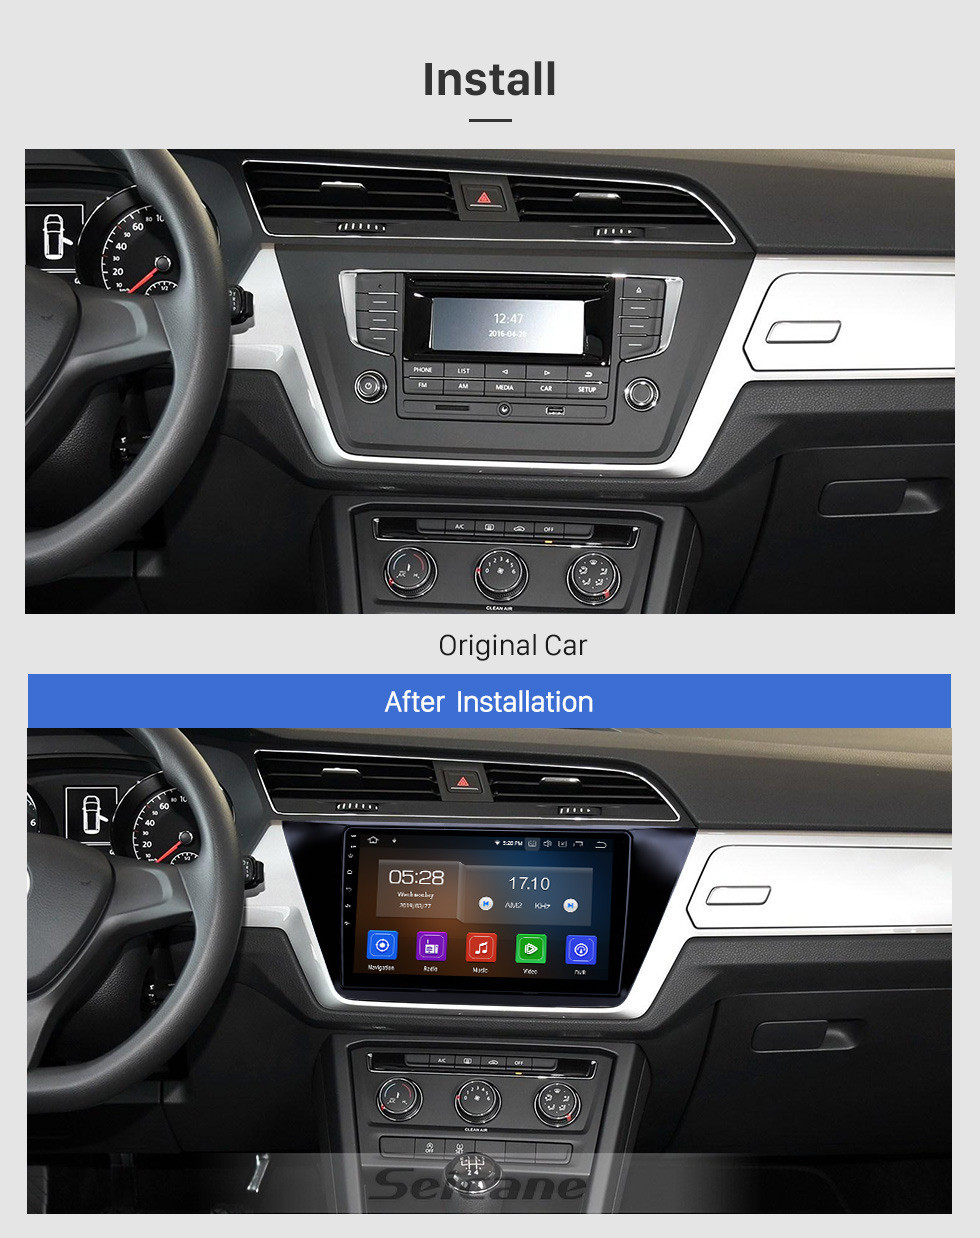 Seicane 10.1 inch Android 10.0 Radio for 2016-2018 VW Volkswagen Touran Bluetooth HD Touchscreen GPS Navigation Carplay USB support OBD2 Backup camera